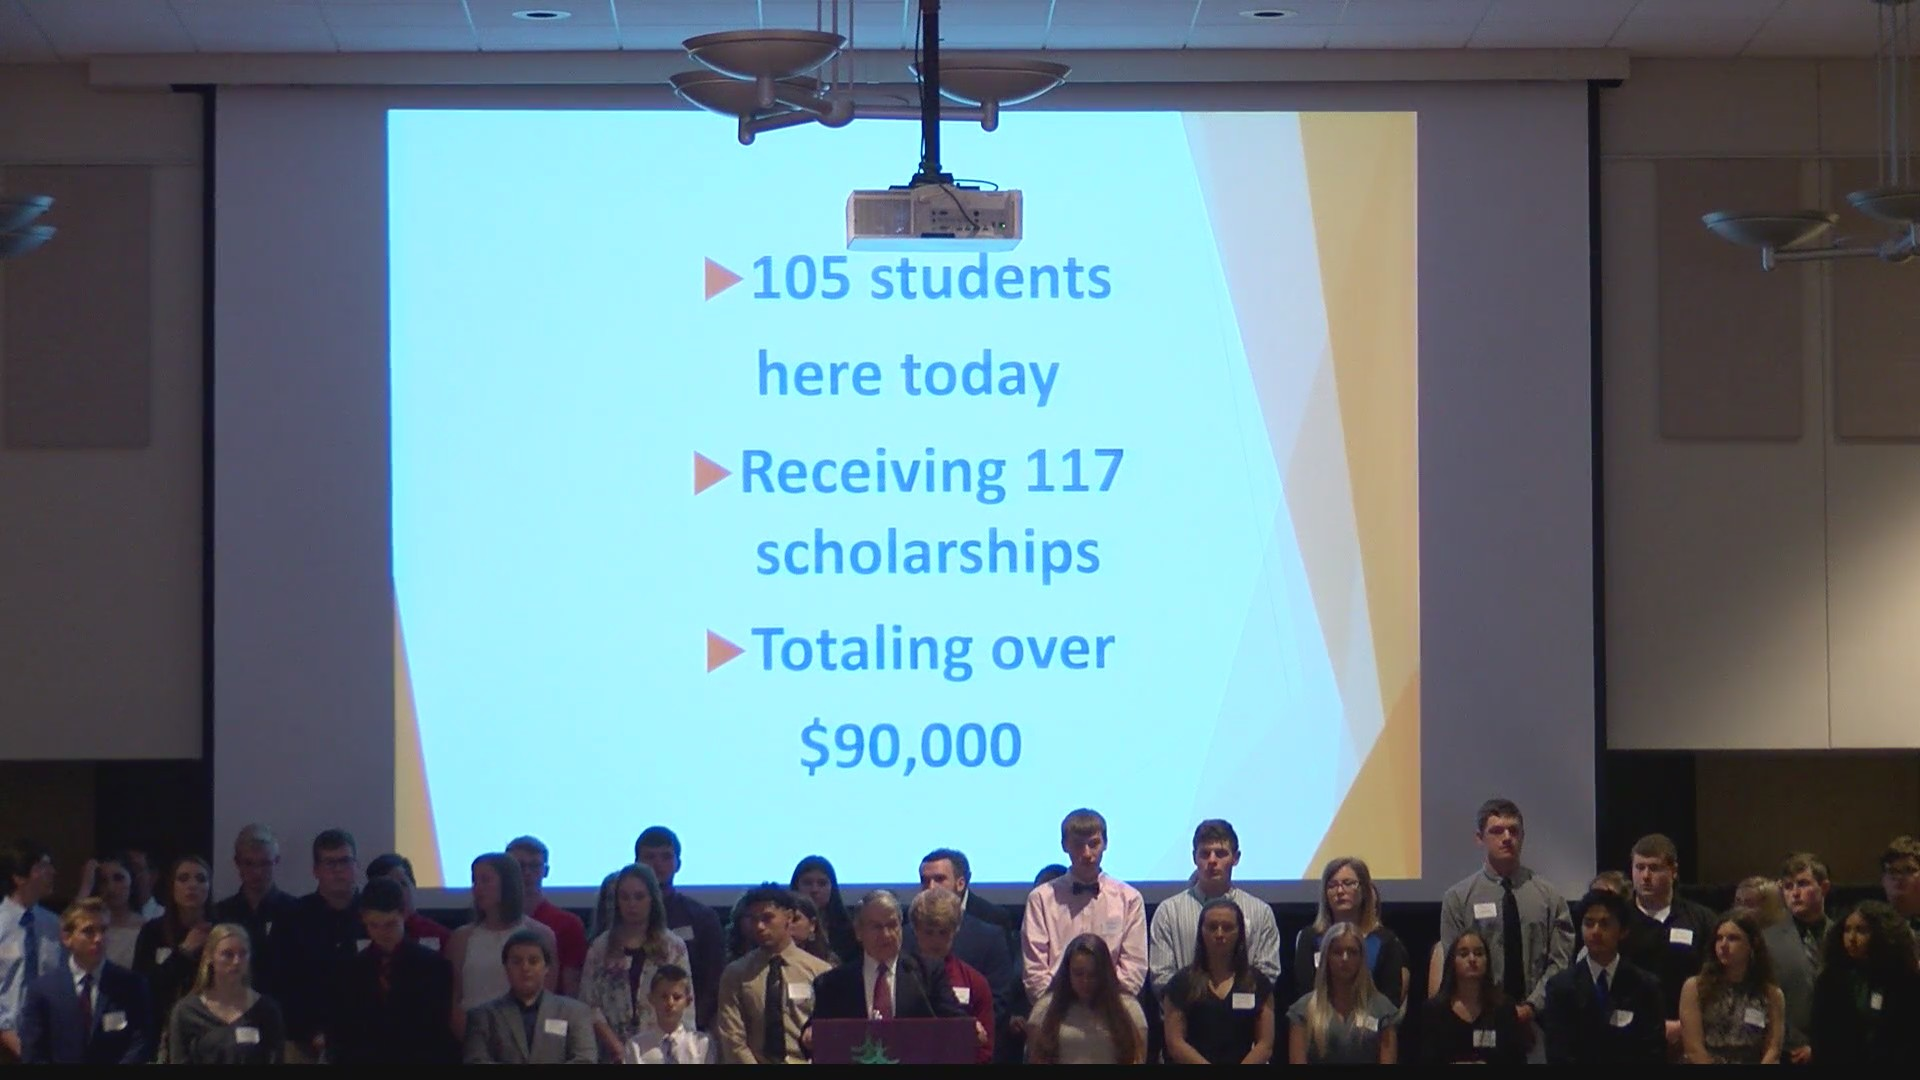 More_than_100_students_receive_scholarsh_0_20190509214457